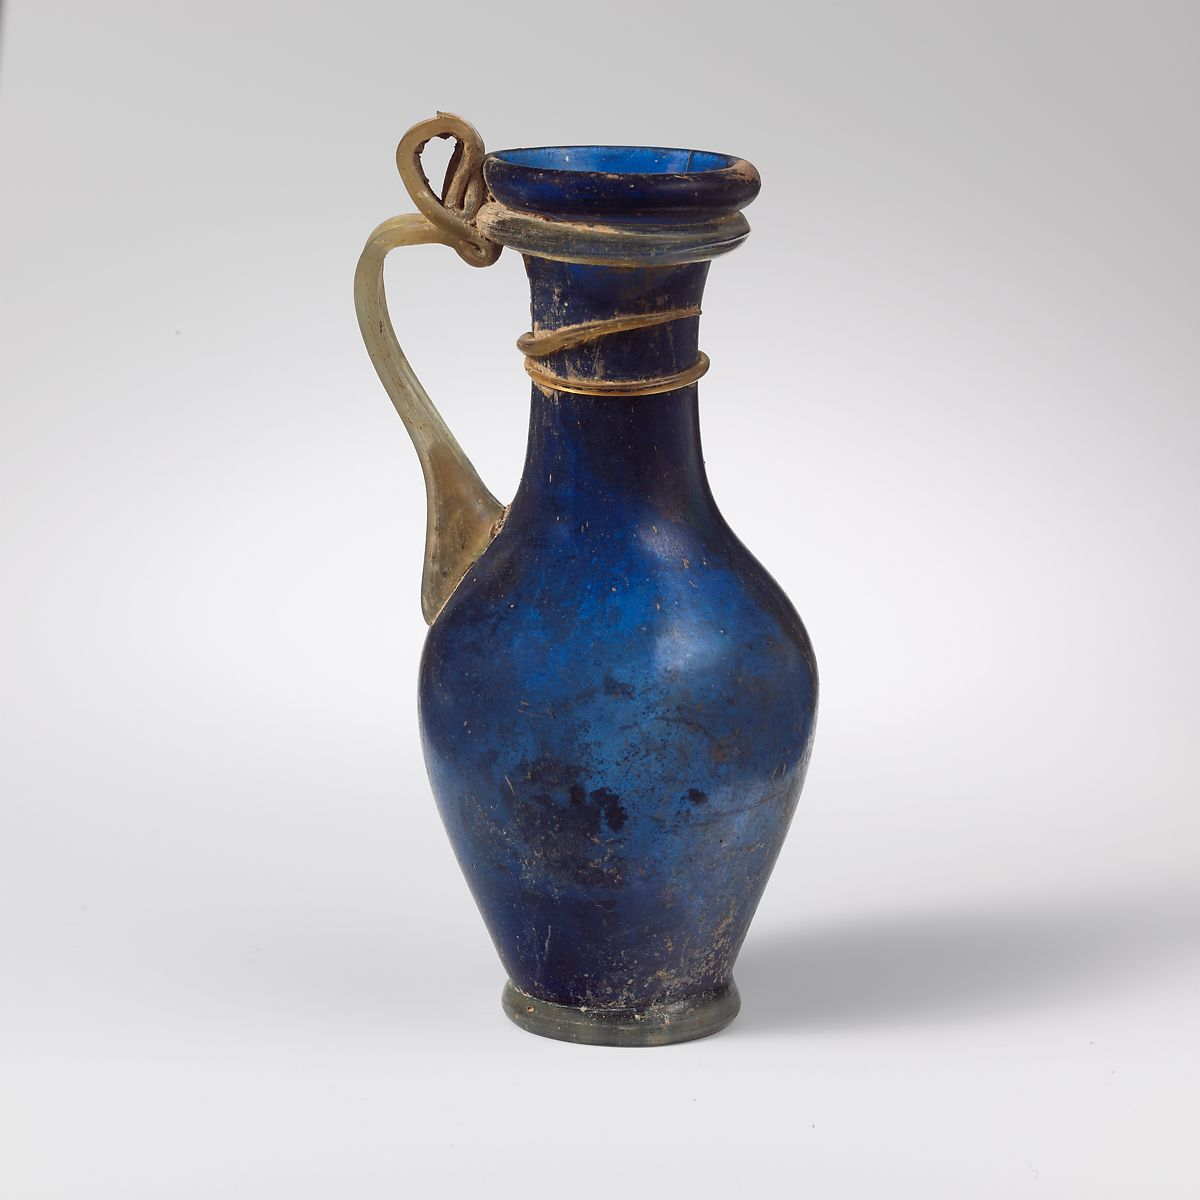 Glass jug | Roman, Rhenish | Late Imperial | The Met